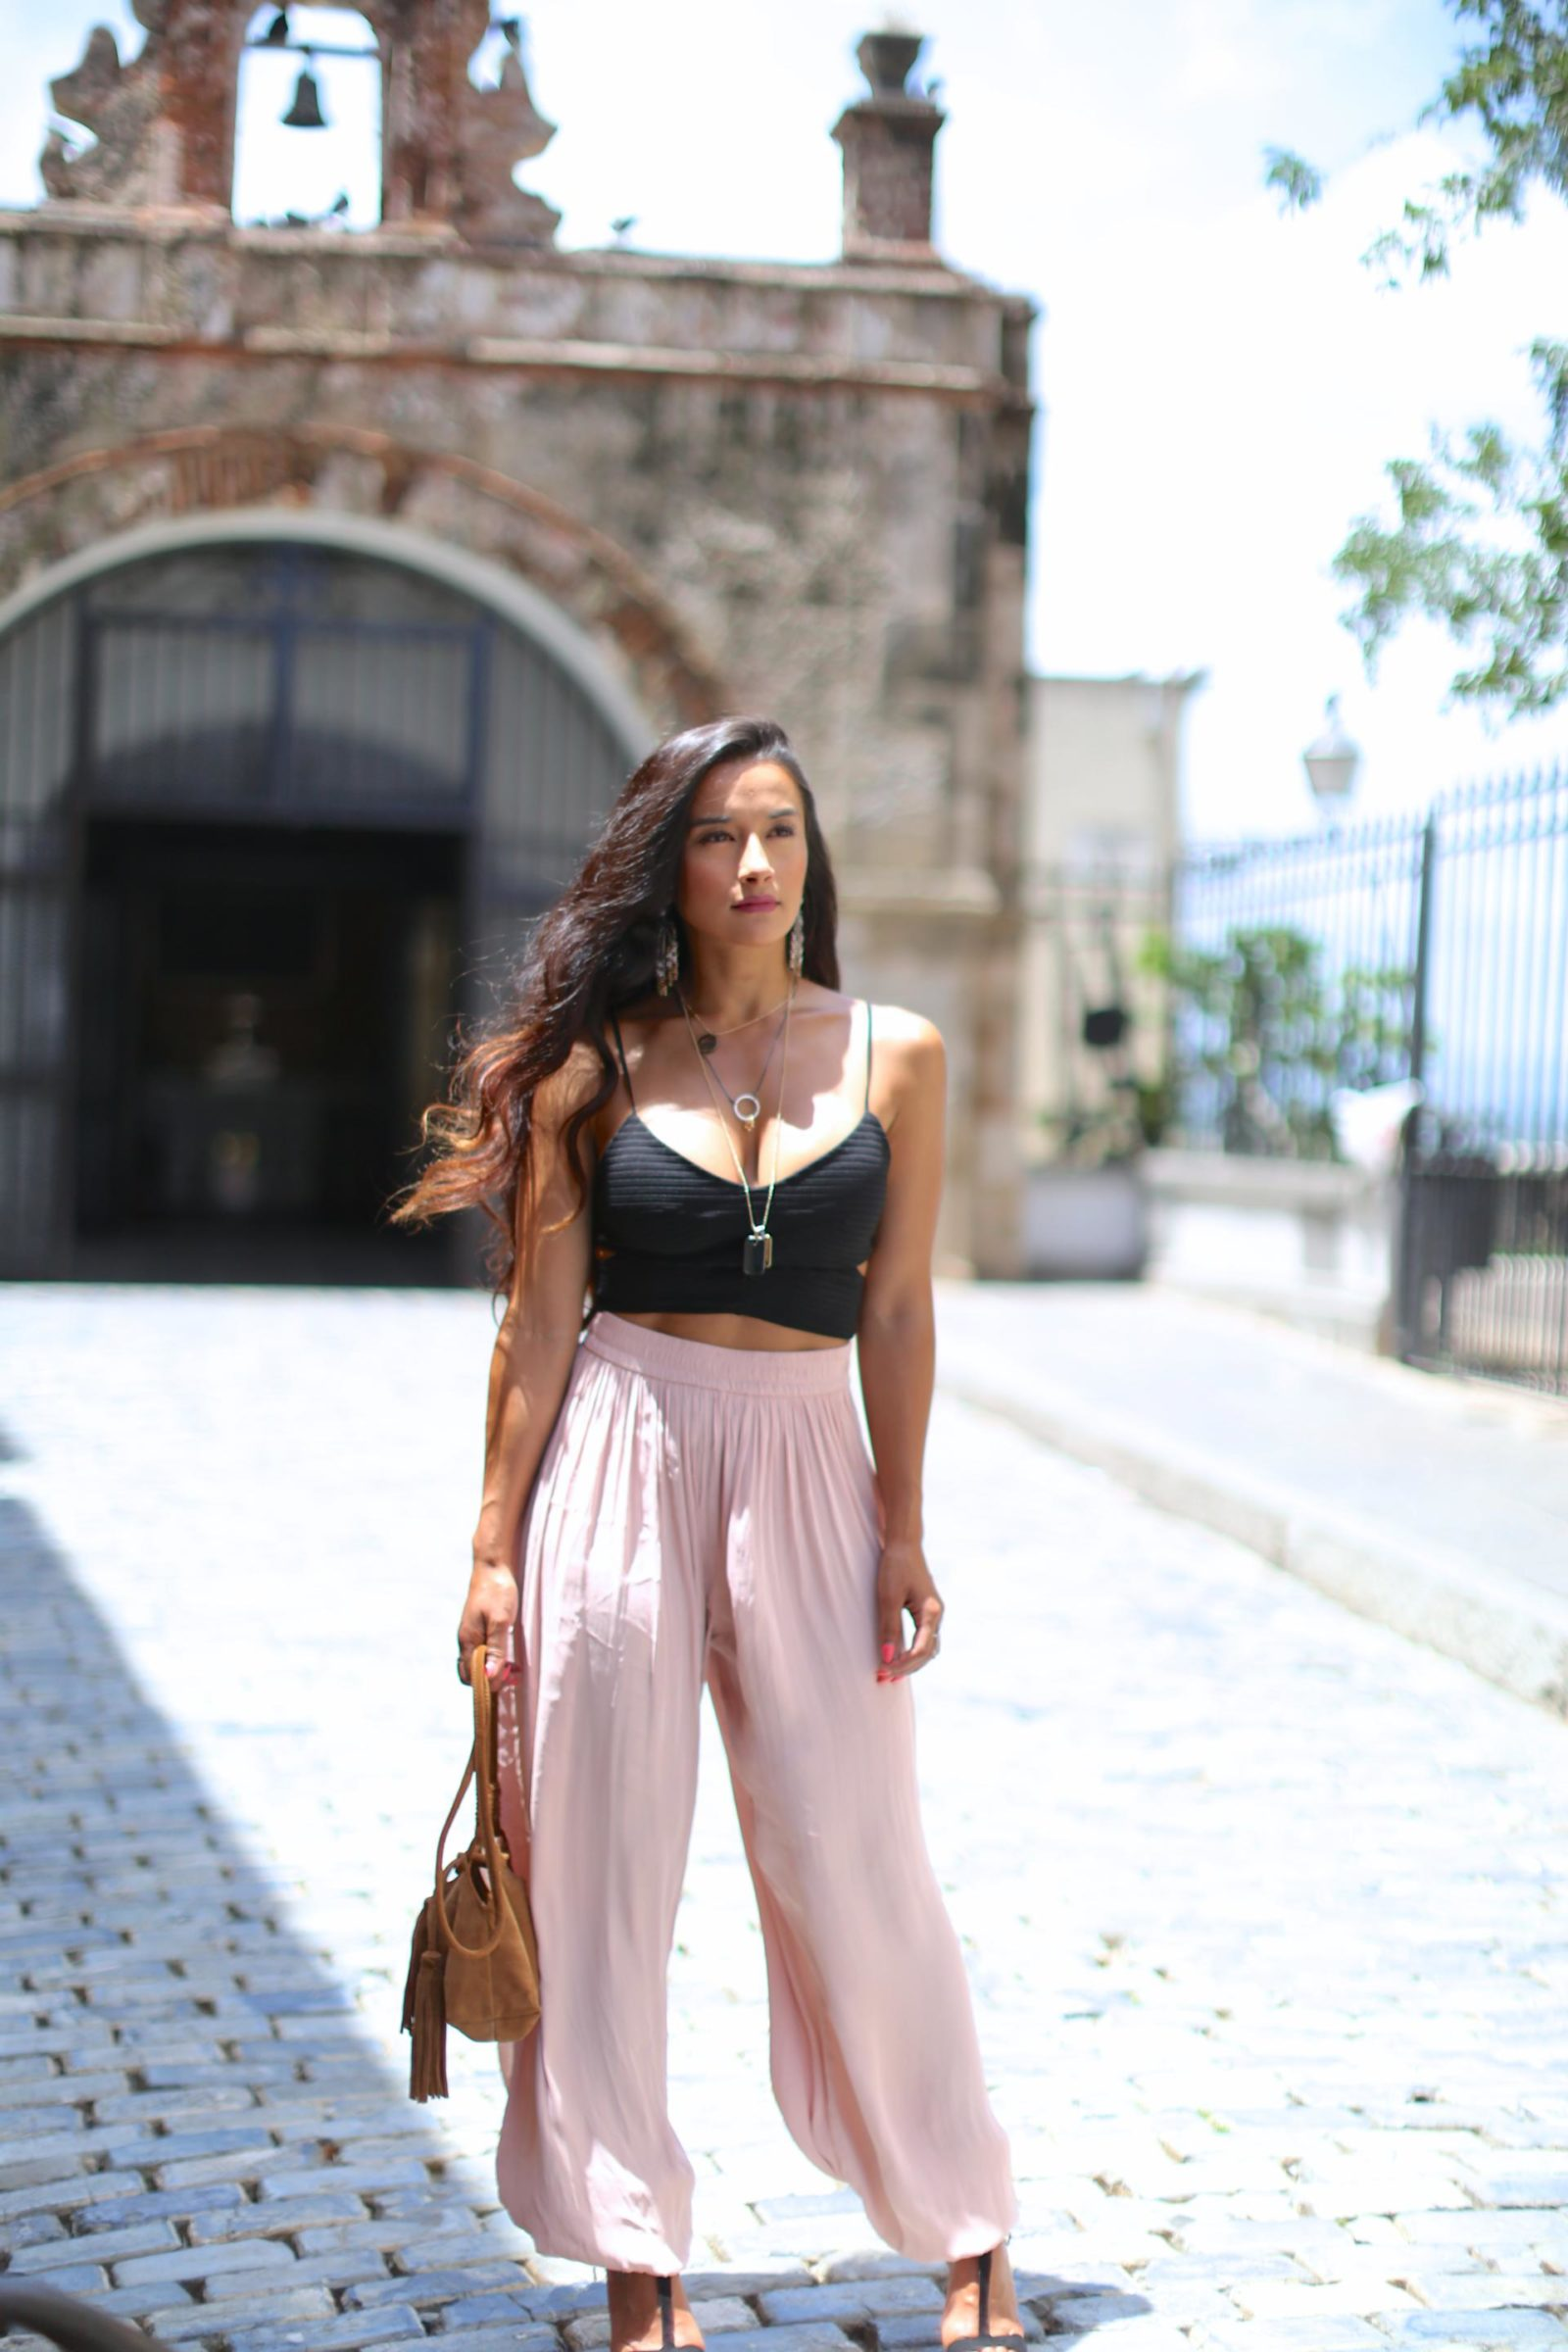 Zara Full Trousers, Black Crop Top, black zara heels, blush pants, puerto rico, Old San Juan, Enchanting look, Latina Blogger, Mexican Blogger